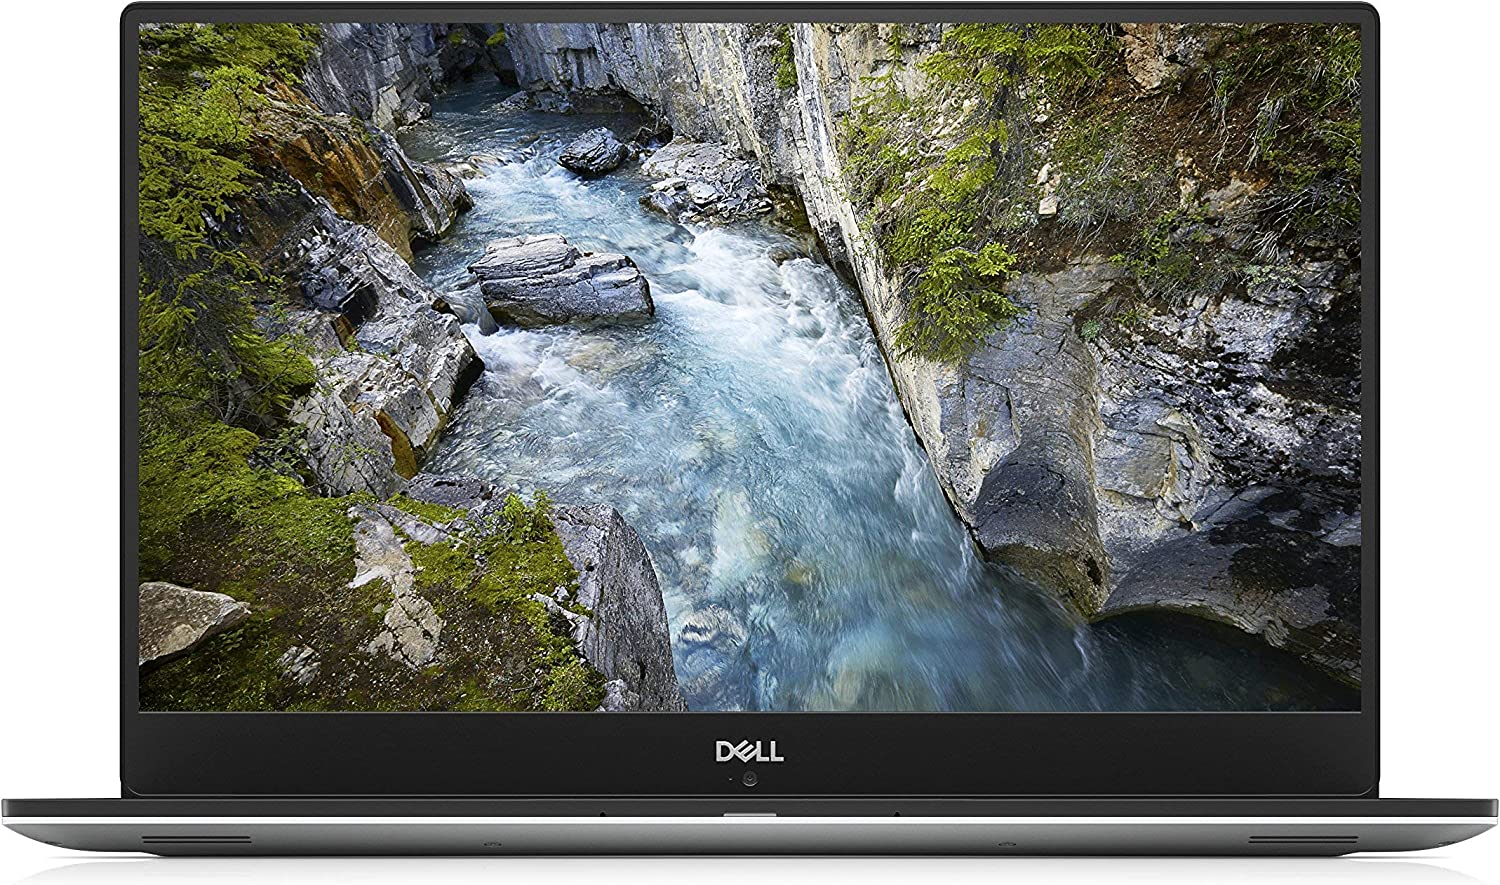 Dell XPS 9570 15.6in FHD i7-8750H 32GB RAM 1TB SSD GeForce GTX 1050Ti Silver Windows 10 Home (Renewed)